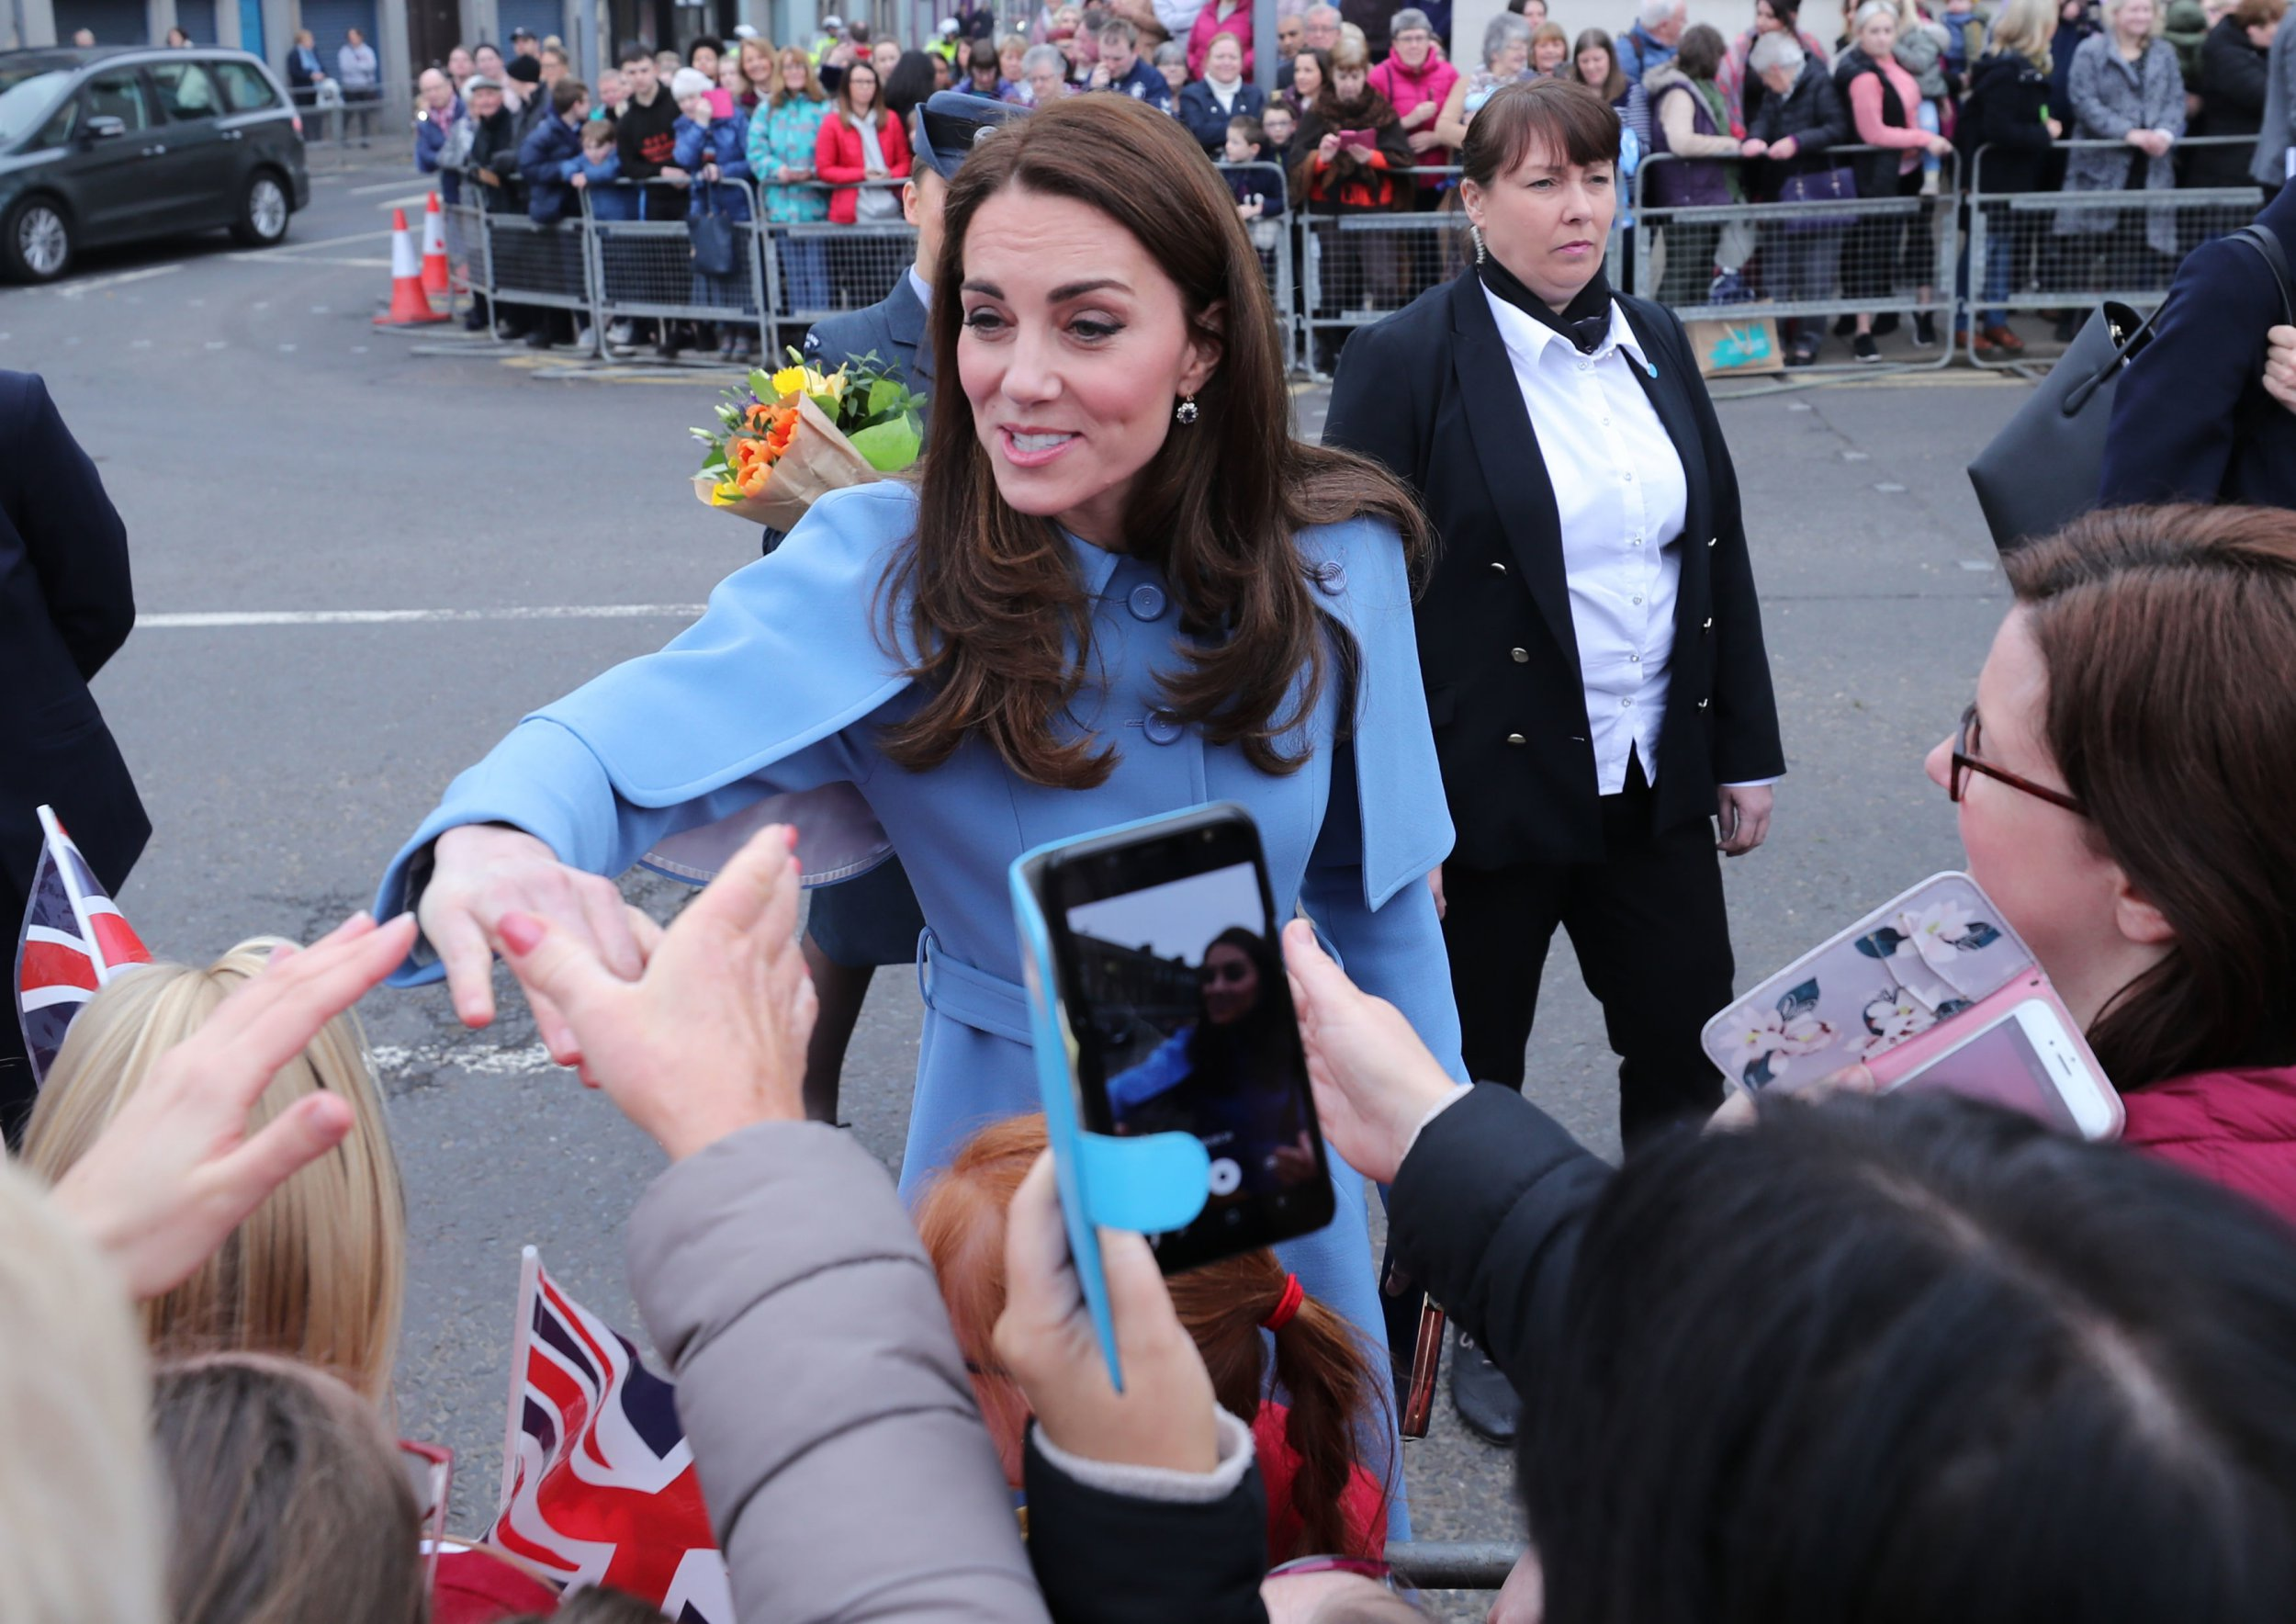 Kate hints she might be ready for fourth child with 'very broody' comment